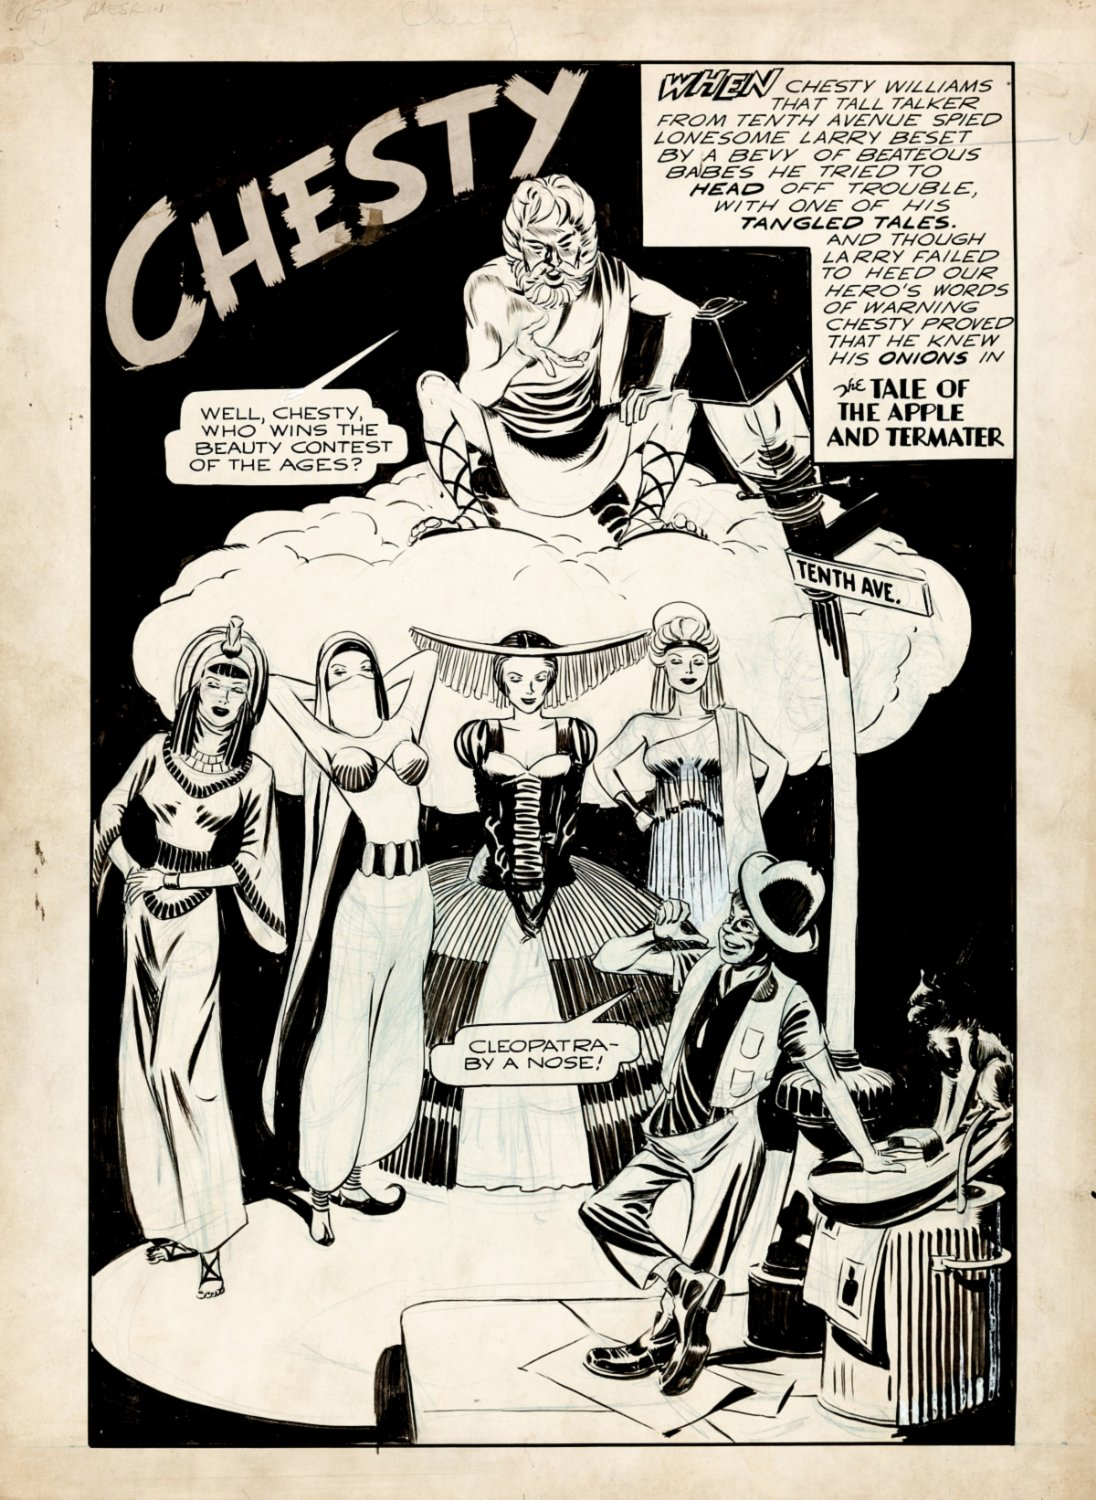 Chesty Williams Golden Age Splash Page (Large Art) 1940s